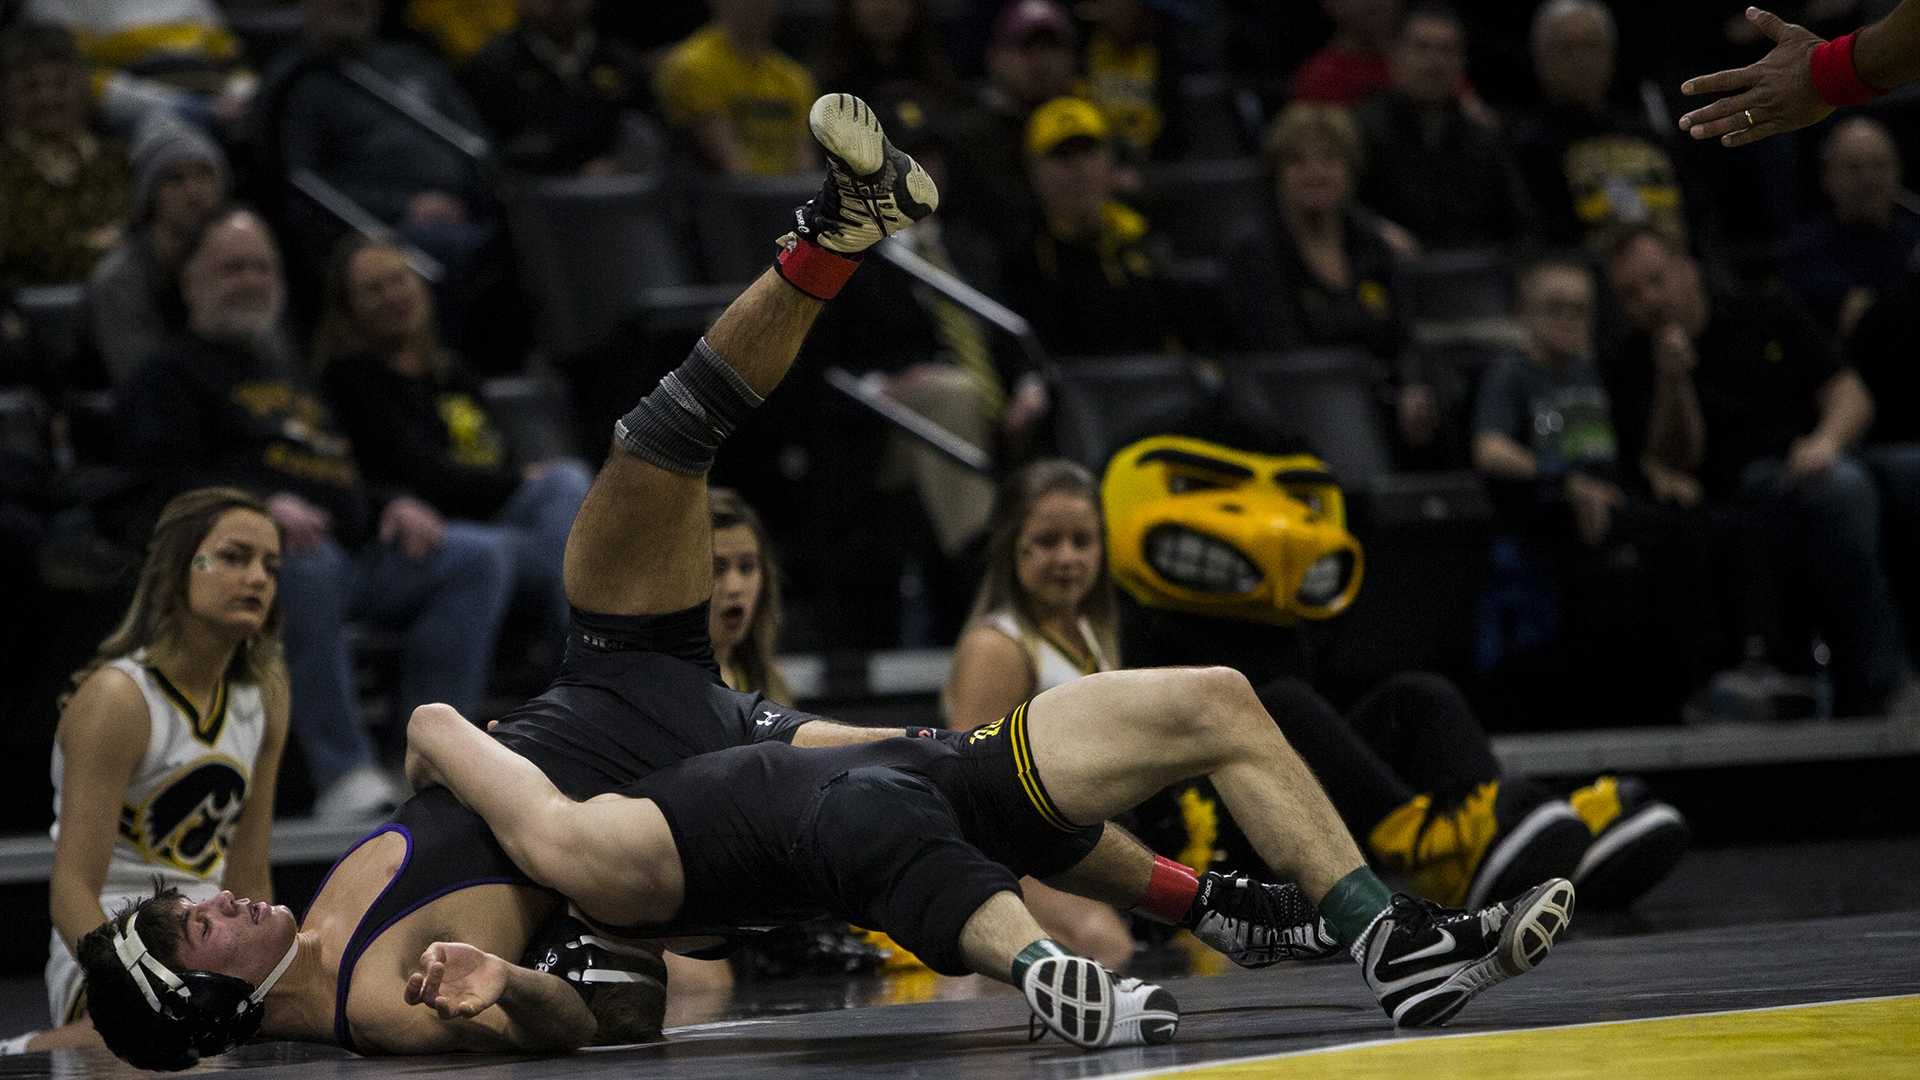 Iowa's #3 ranked 125 pound Spencer Lee wrestles Northwestern's #10 ranked Sebastian Rivera during the Iowa vs. Northwestern dual meet on Sunday, Feb. 4, 2018. The Hawkeyes defeated the wildcats 33-2. (Nick Rohlman/The Daily Iowan)